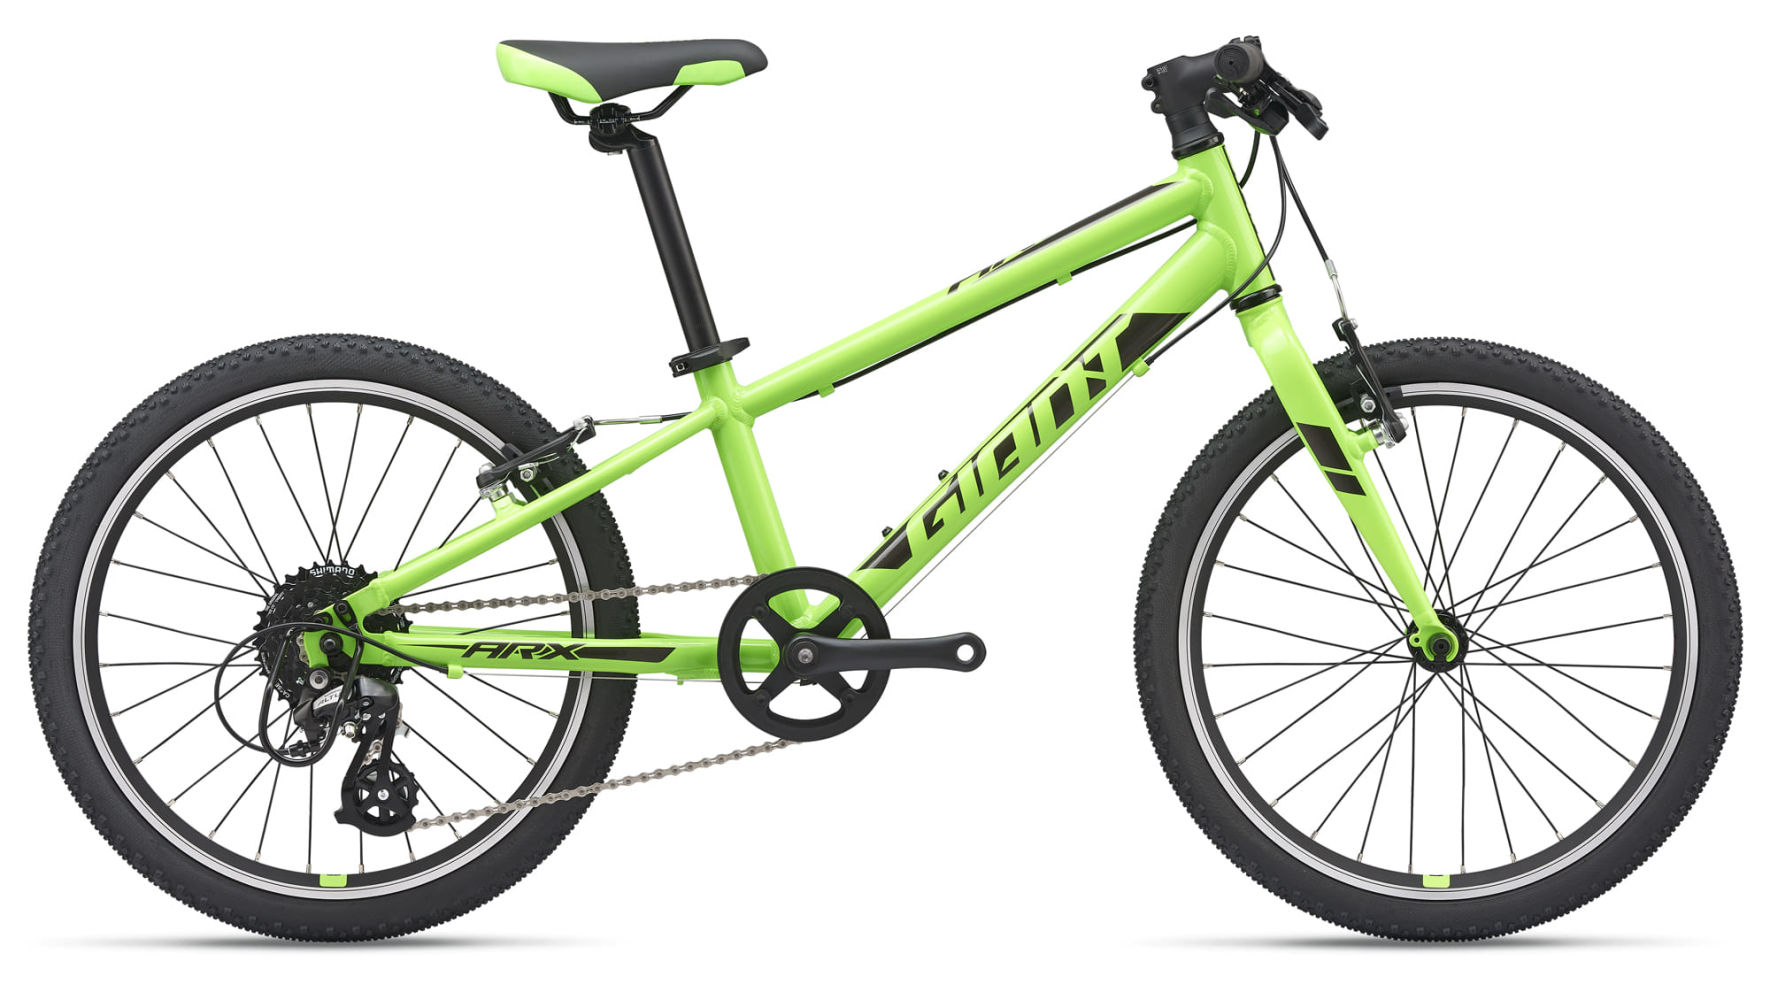 2020 Giant Arx 20 Childs Bike In Green 349 00